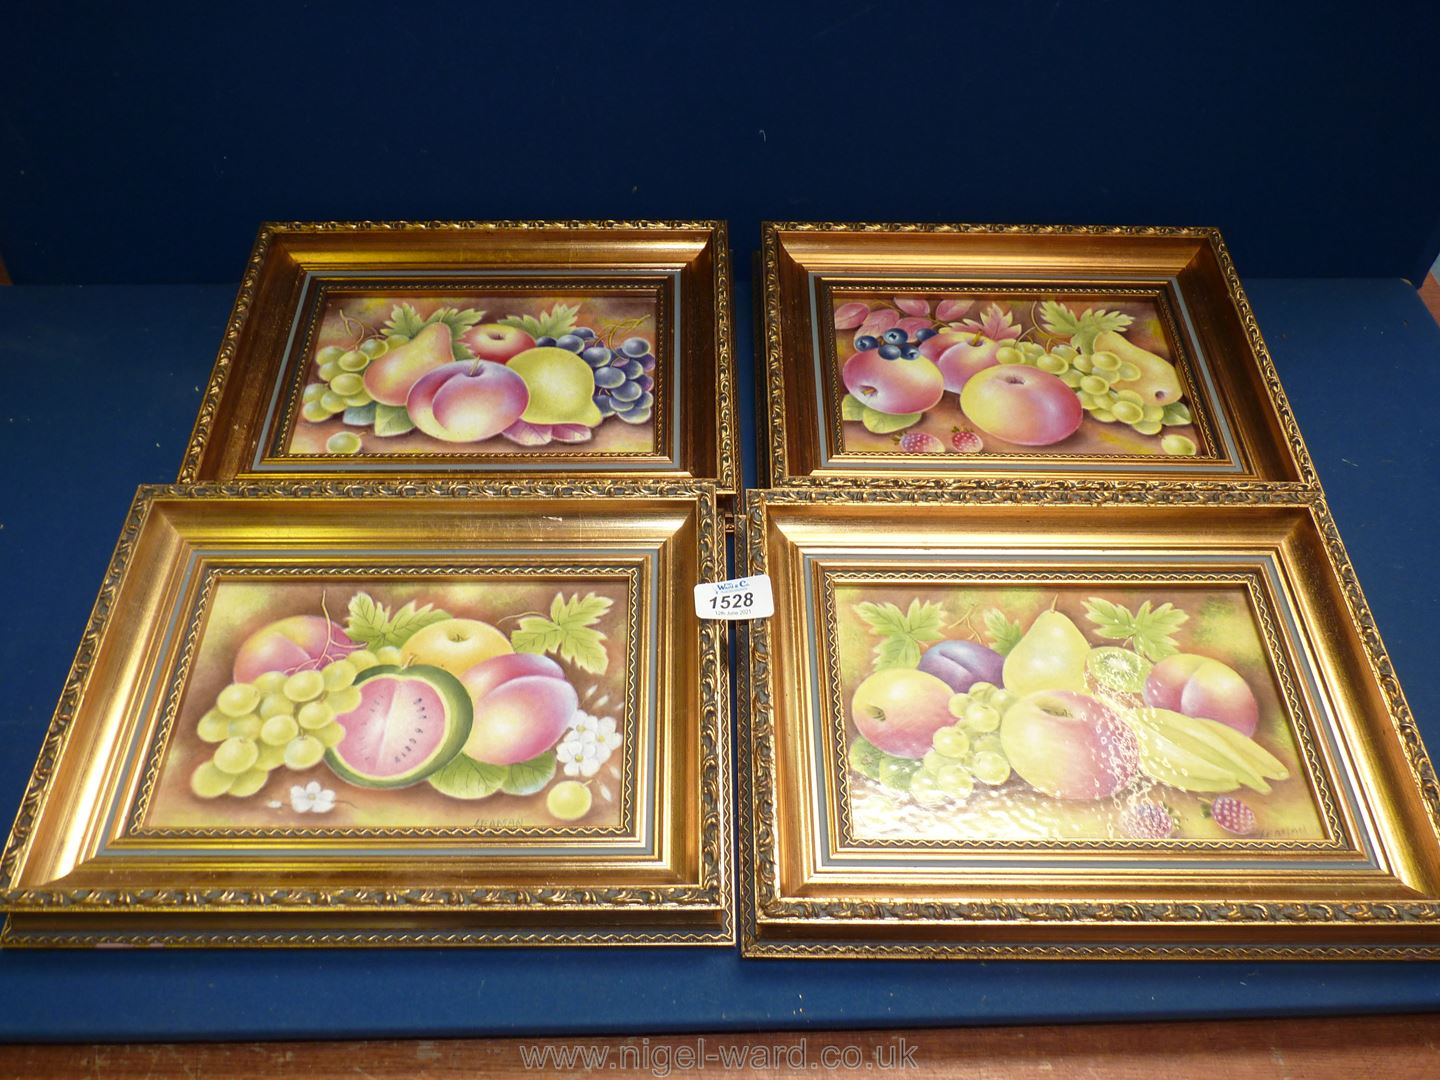 Four gilt framed ceramic tiles depicting apples, pears, white grapes and banana, after Leaman,